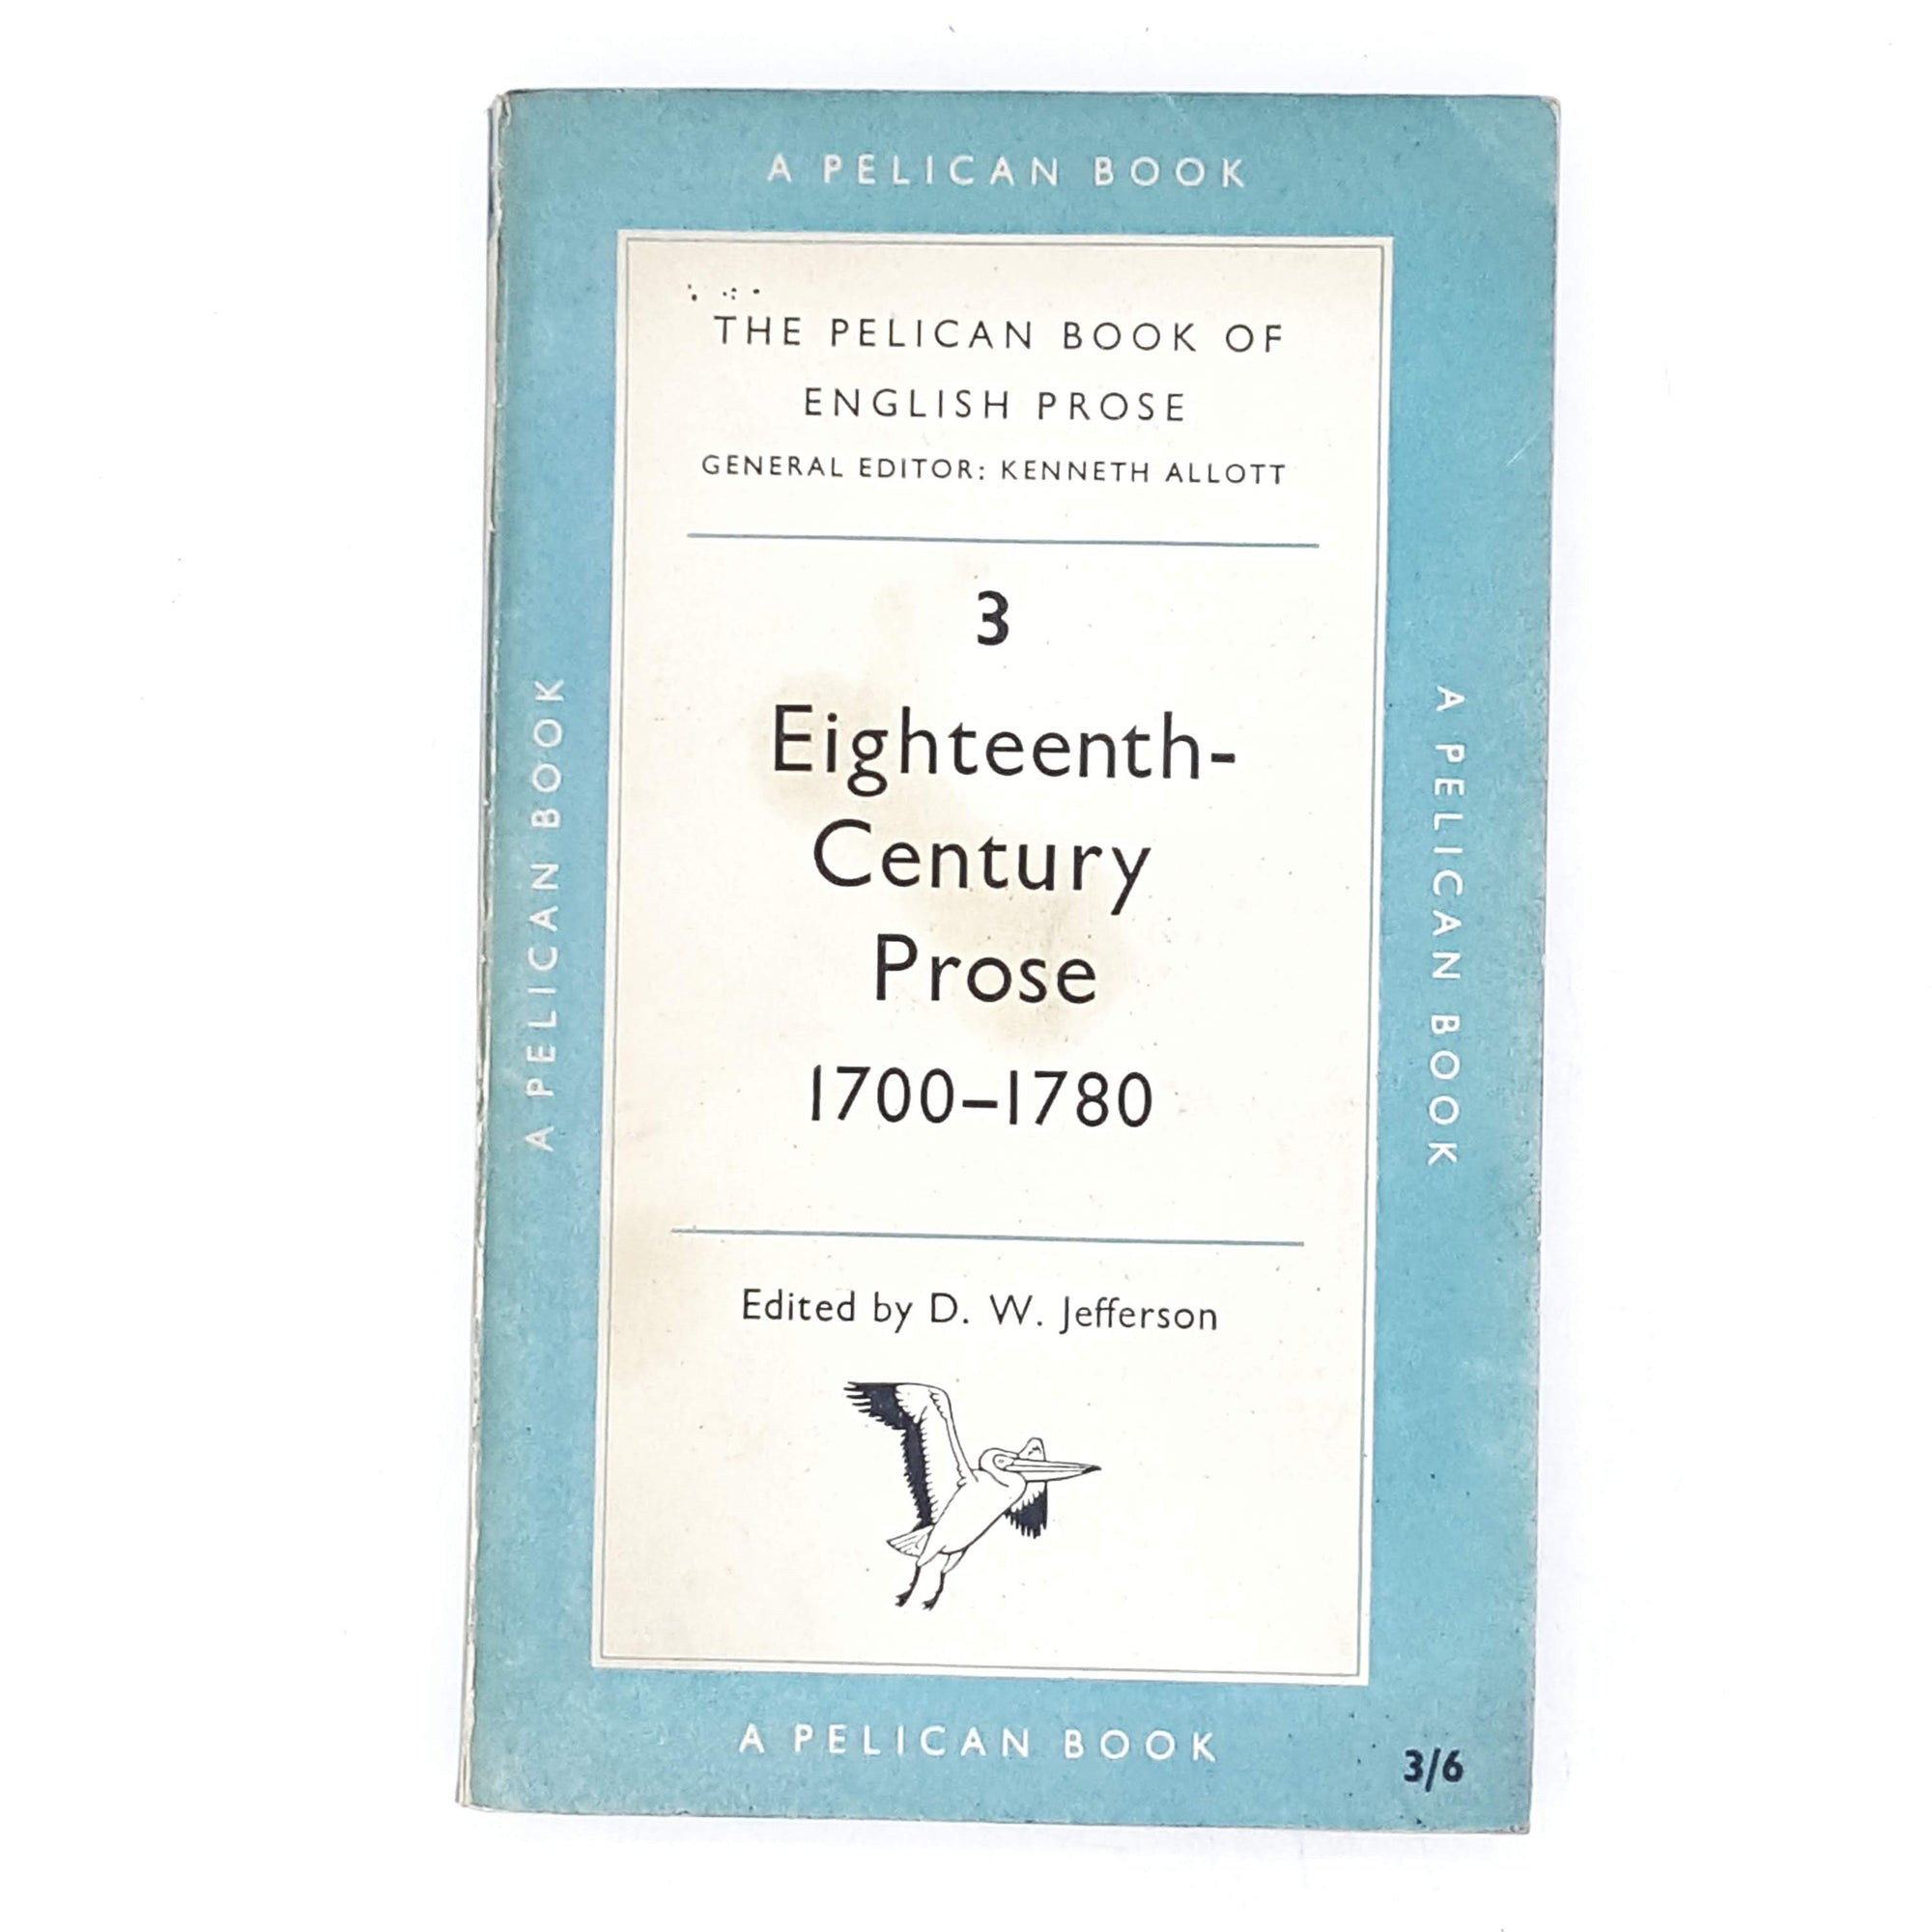 Eighteenth-Century Prose 1700 - 1780 by D. W. Jefferson 1956